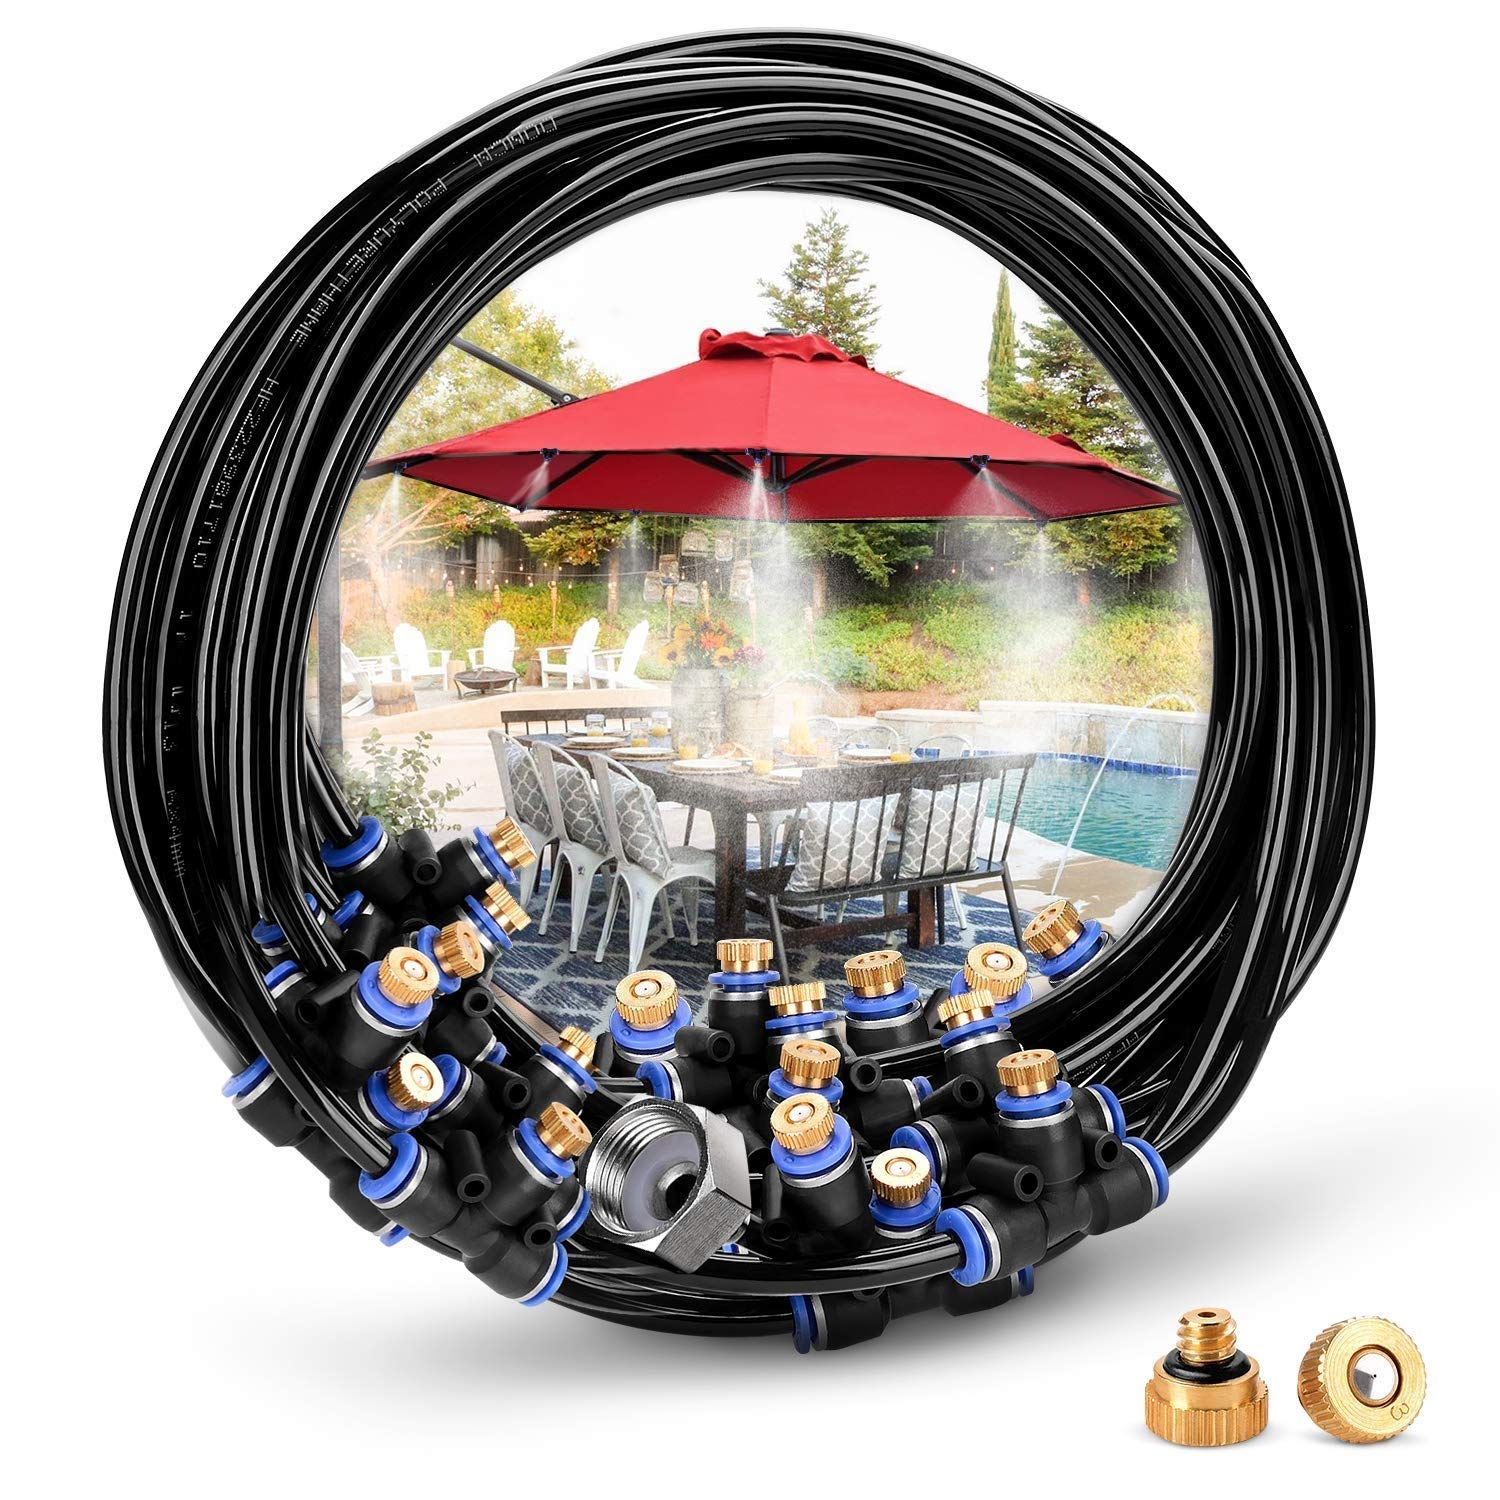 Hiyougen Misting Cooling System, 75.46FT (23M) Misting Line + 34 Brass Mist Nozzles + a Brass Adapter(3/4) for Watering Fan Patio Garden Umbrellas Greenhouse Trampoline by Hiyougen